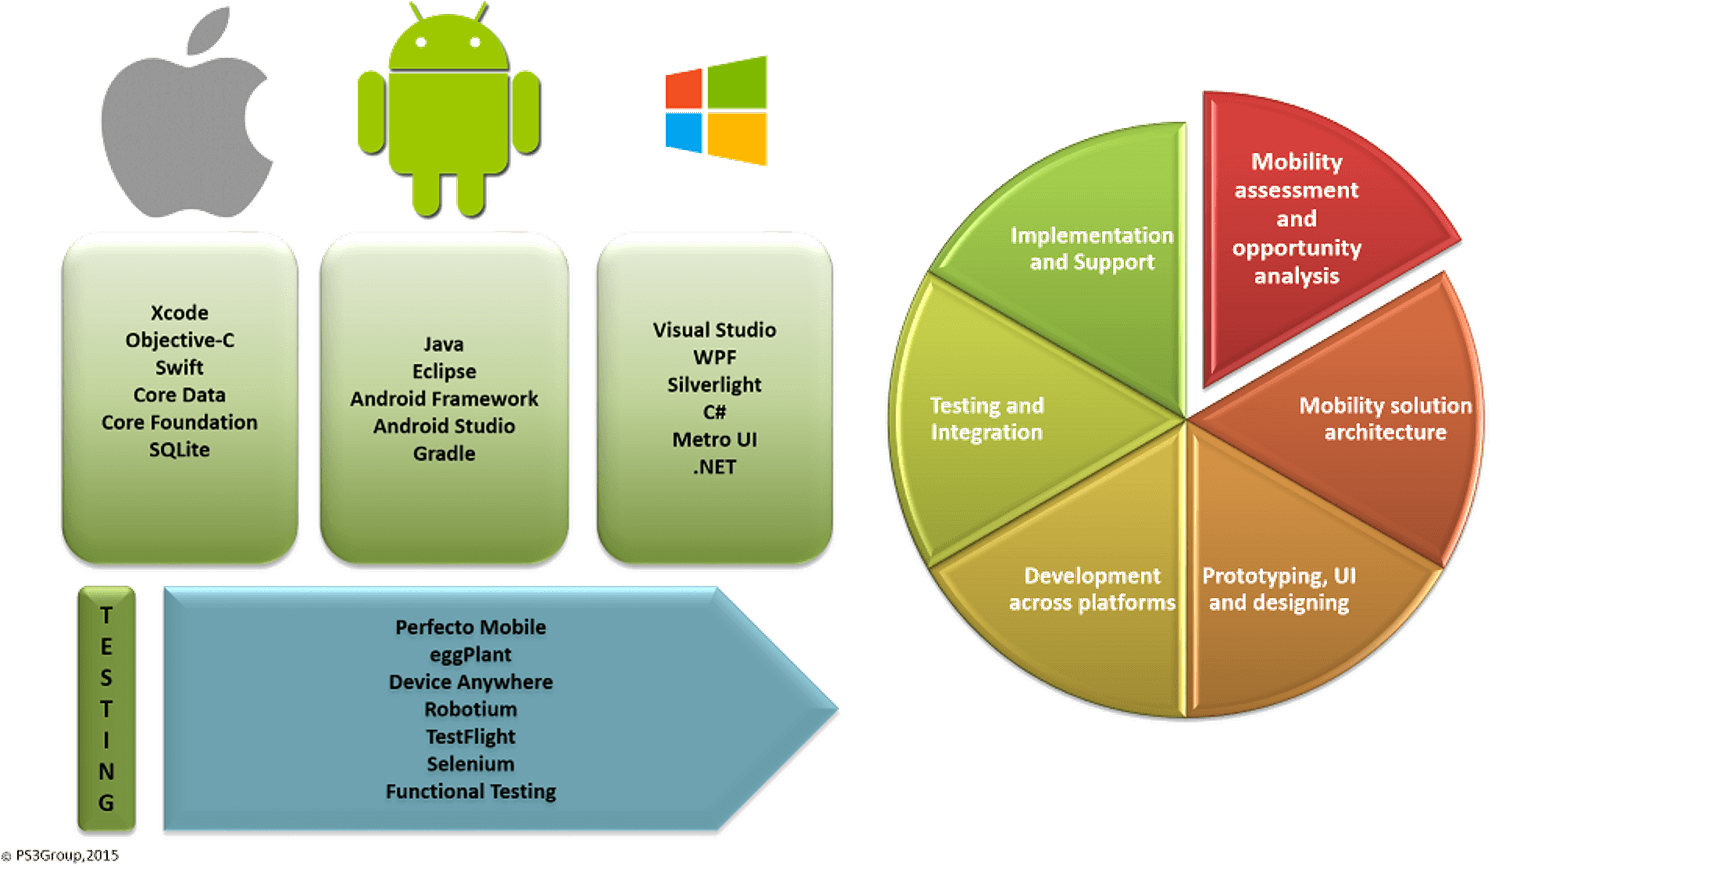 iOS, Android, Windows, Mobile development and testing, Device Anywhere, Perfecto Mobile, eggPlant, Selenium